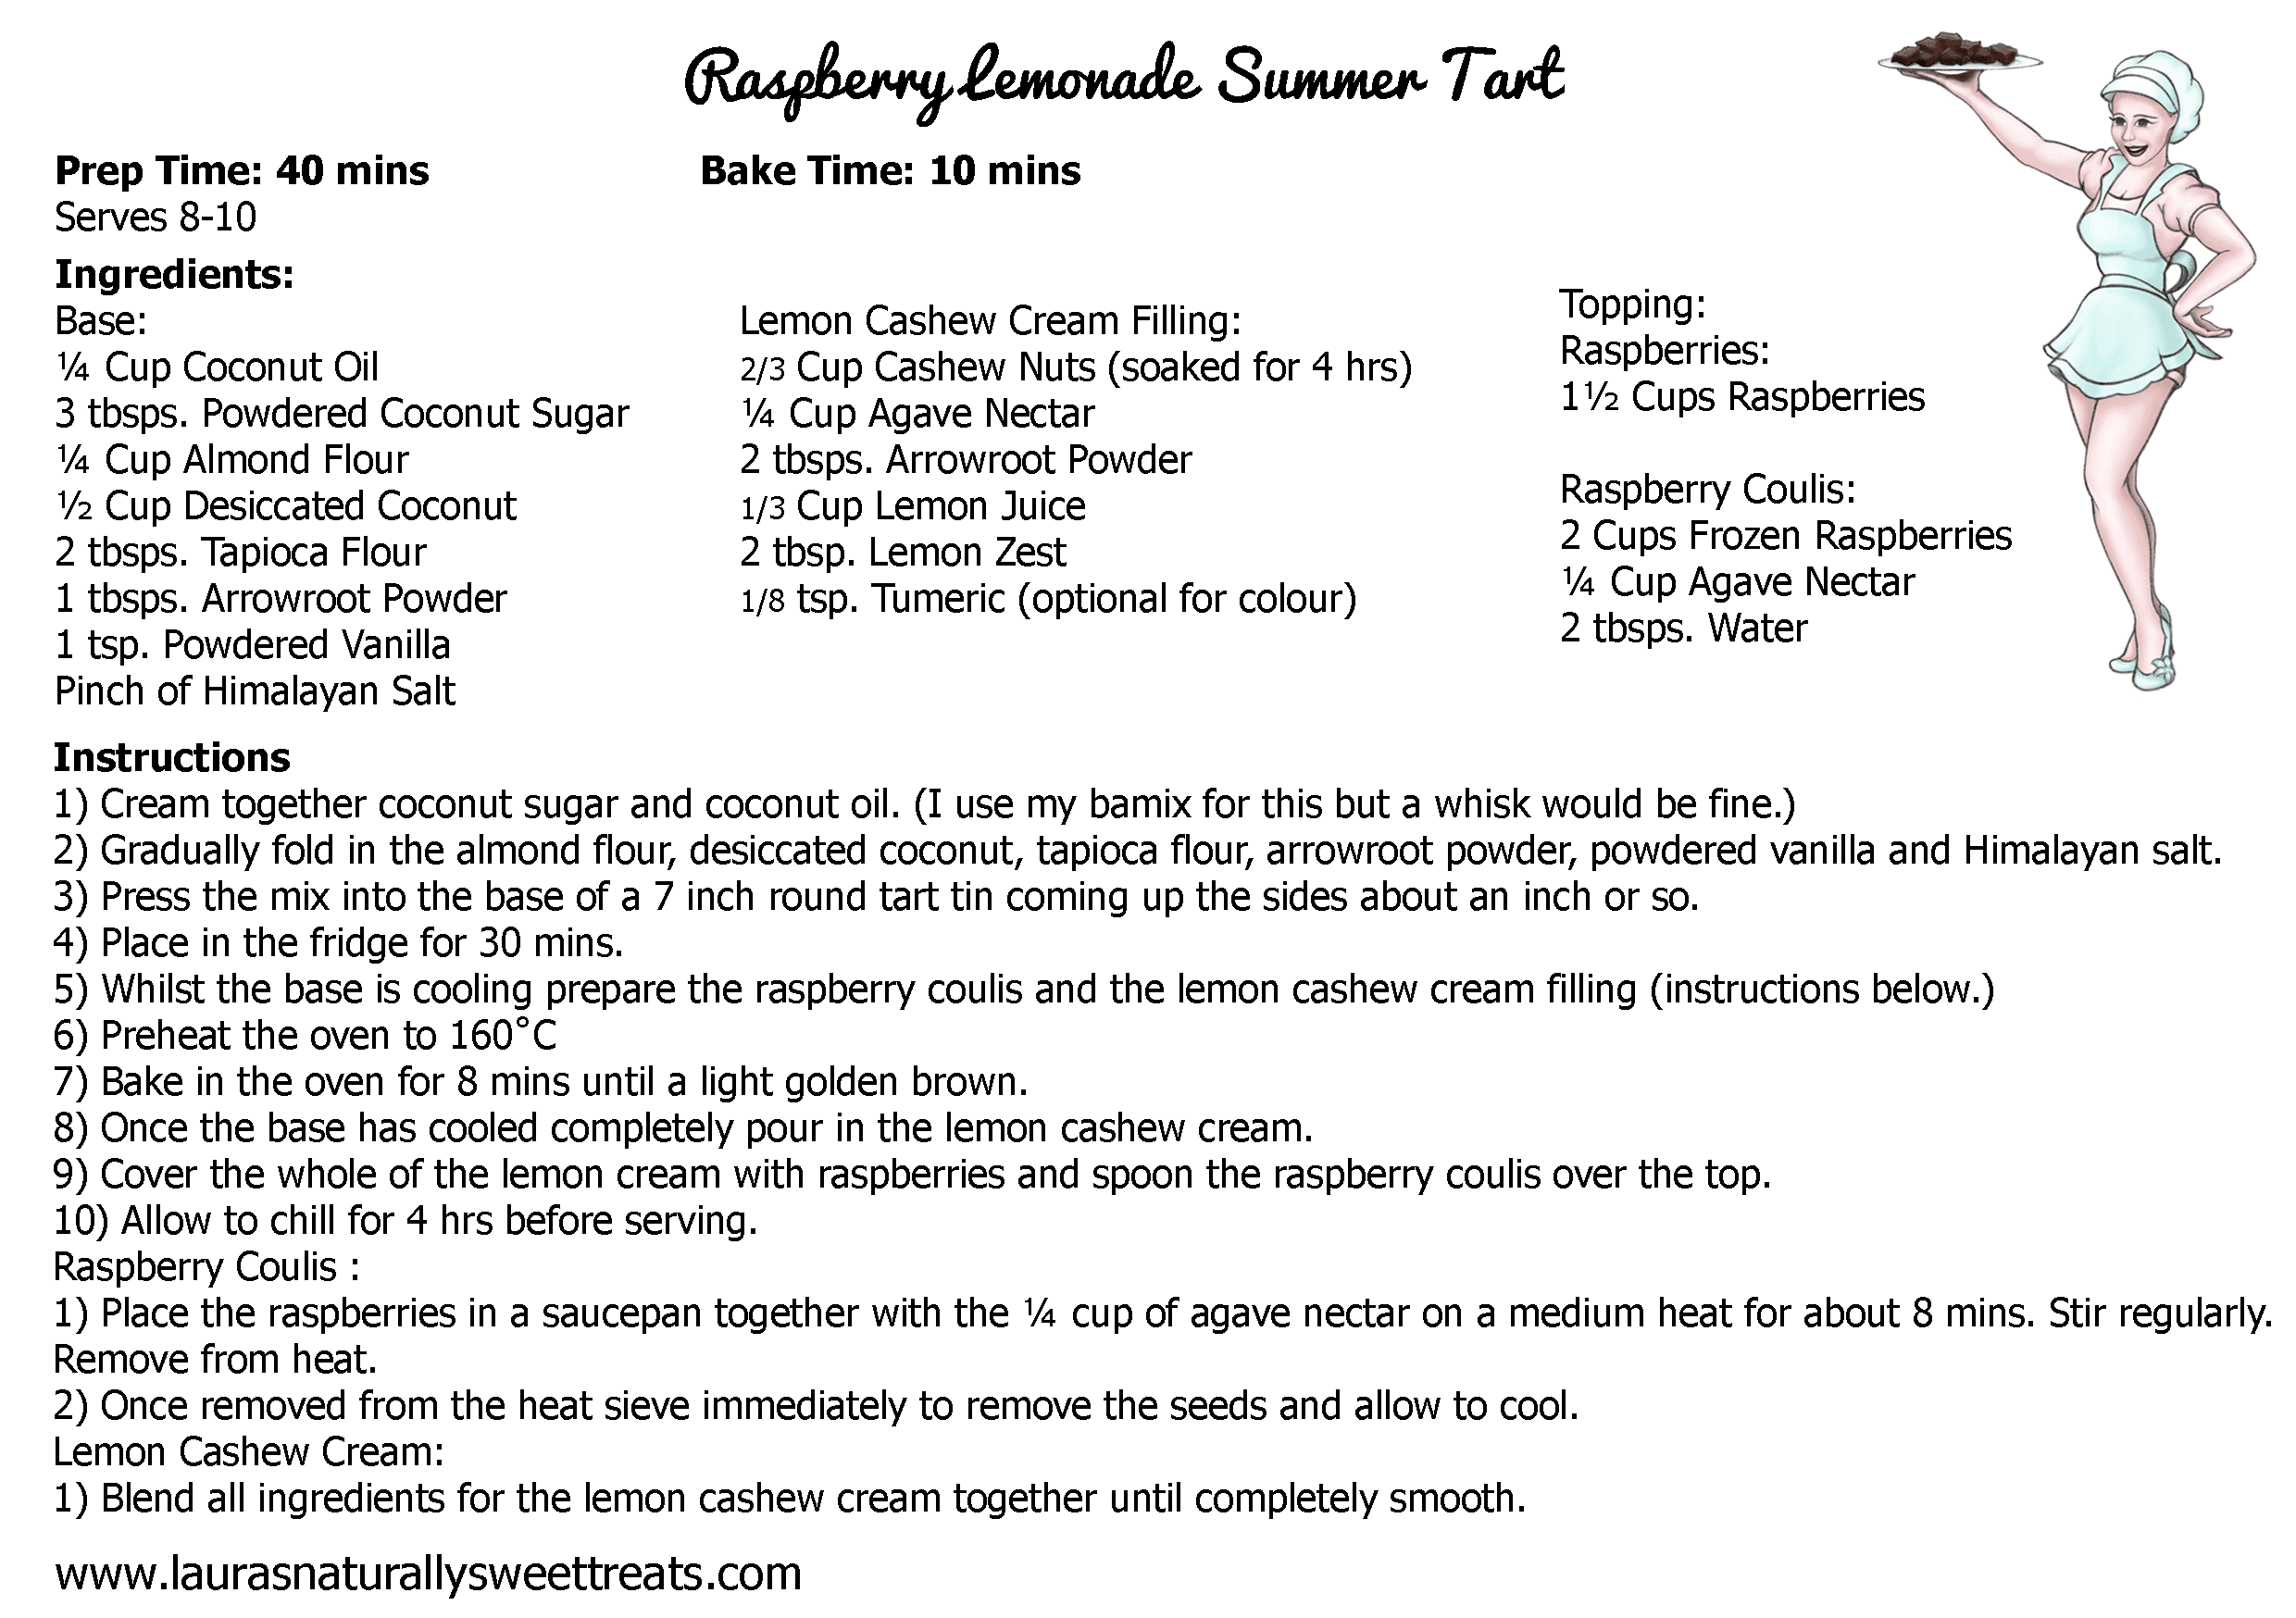 raspberry-lemonade-summer-tart-recipe-card